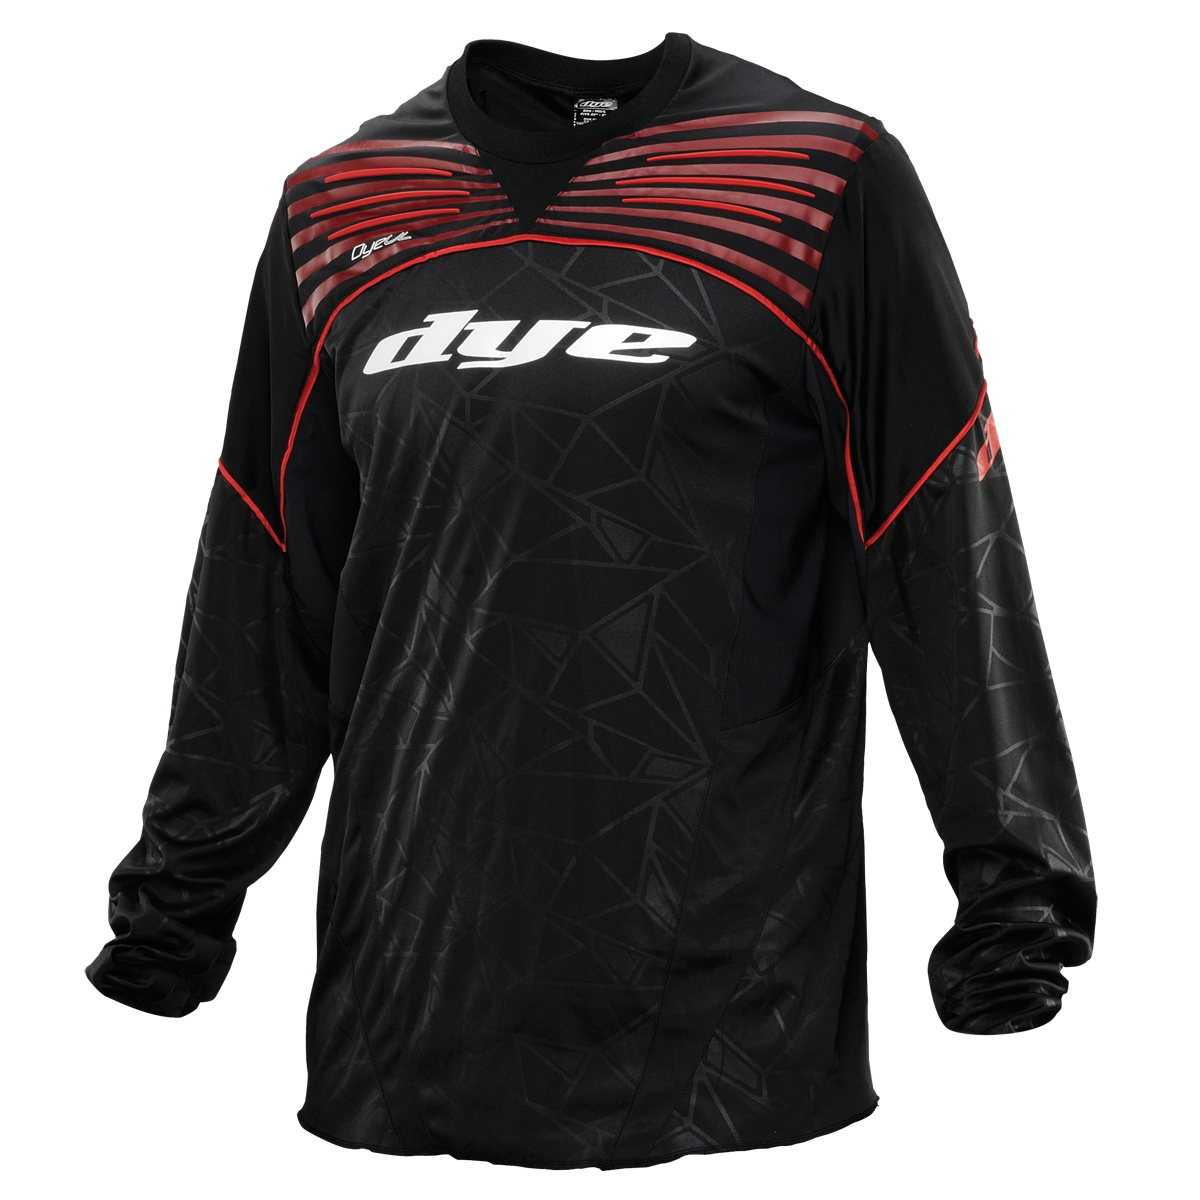 Ultralite Jersey   Black   Red